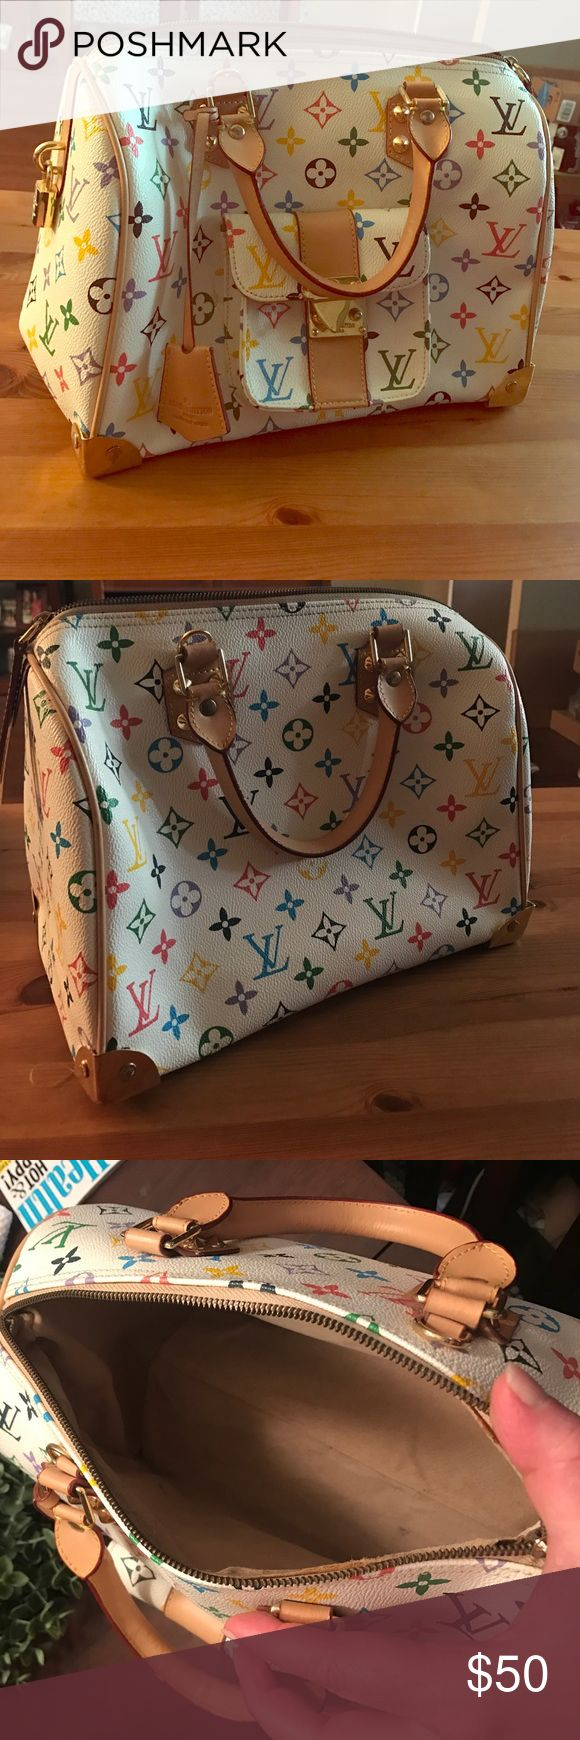 LV inspired speedy bag in multicolor High quality 'Inspired' multicolor monogram speedy bag. Please read before asking as this is NOT auth and you won't find one for this price. Louis Vuitton Bags